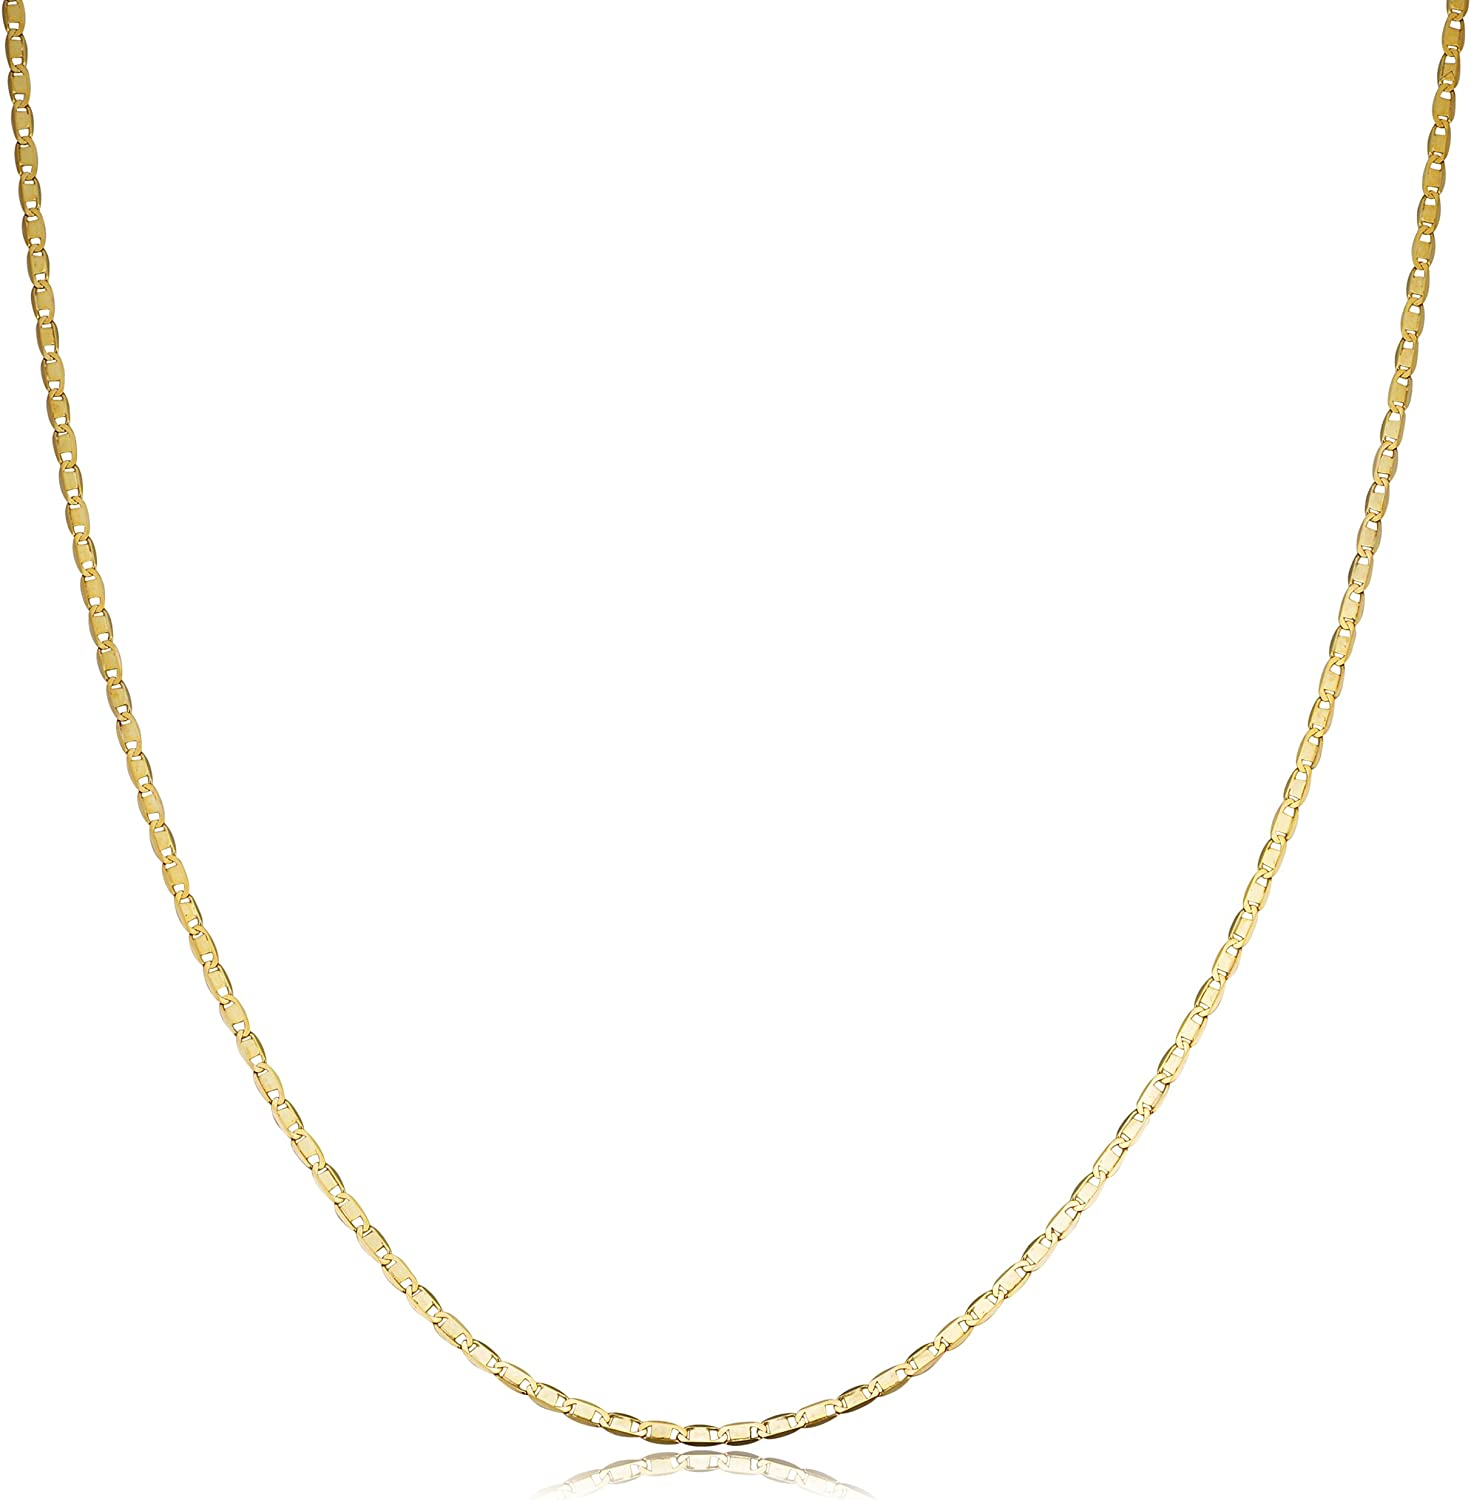 KoolJewelry 10k Yellow Gold 1.4 mm Flat Oval Link Chain Necklace (16, 18, 20, 22, 24 or 30 inch)